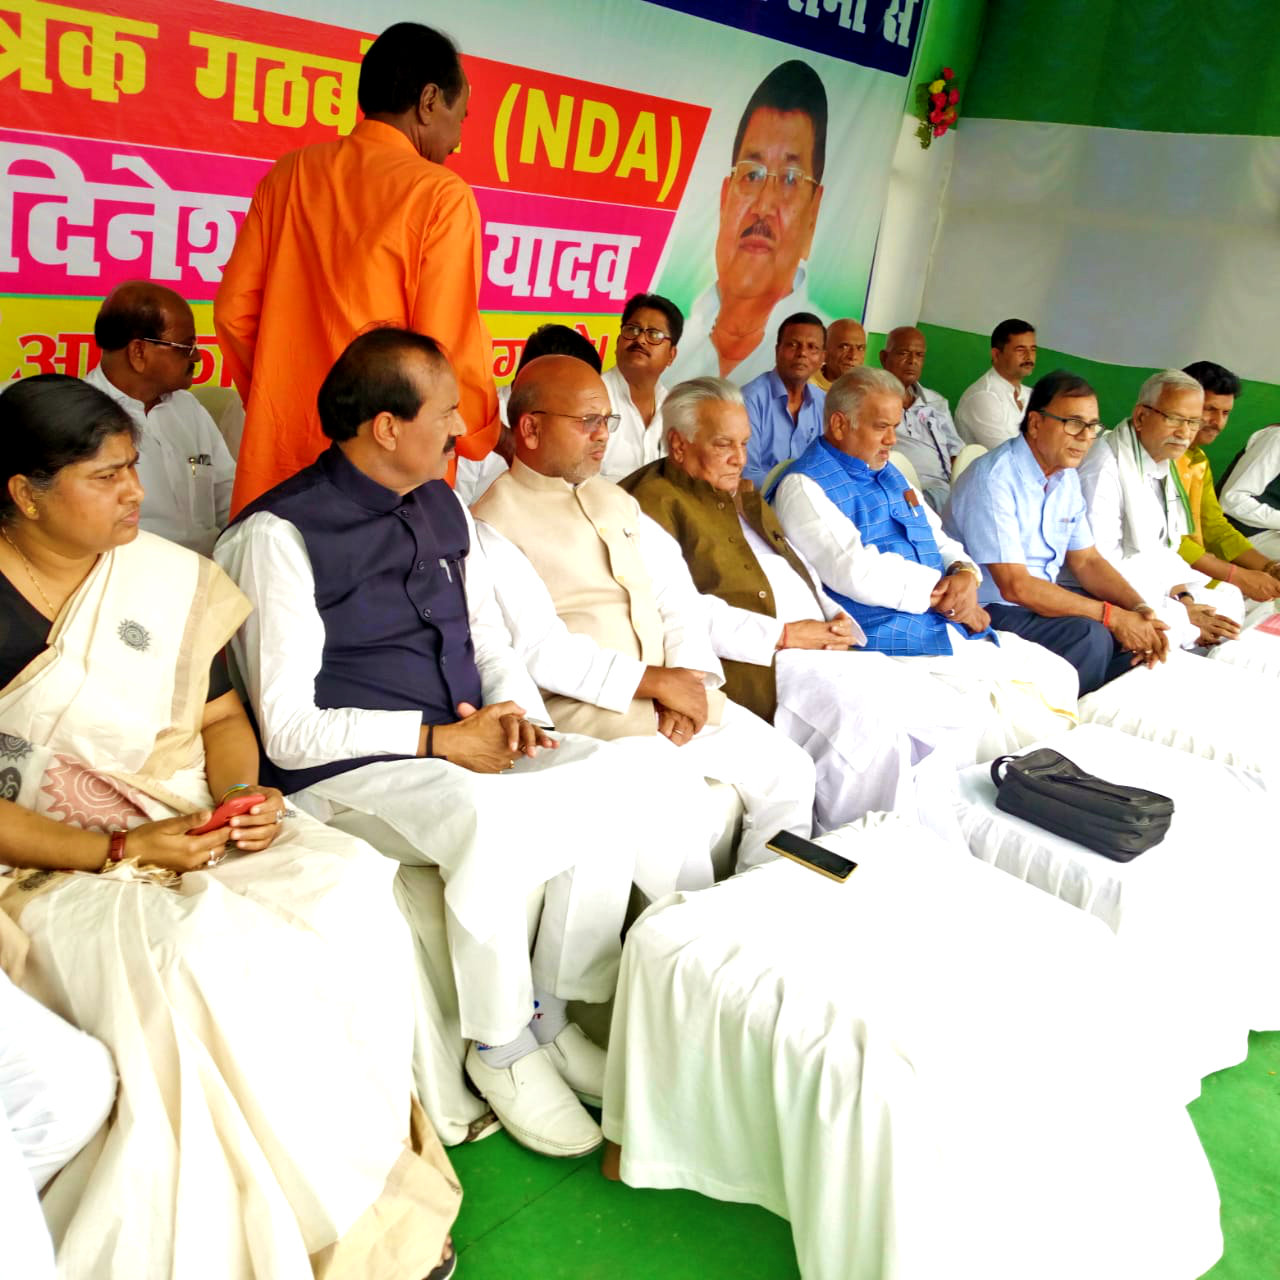 Senior Leader of JDU Dr.Bhupendra Narayan Yadav Madhepuri attending the nomination ceremony of Kosi Vikas Purush Shri Dinesh Chandra Yadav (Cabinet Minister of Nitish Govt.) along with Minister Shri Shrawan Kumar, Former MP & Founder VC of BNMU Dr.R.K.Yadav Ravi, Former Minister of Bihar Govt. Shri Narendra Narayan Yadav, Former Minister Prof.Ravindra Charan Yadav, Former Minister Lesi Singh, MLA Ratnesh Sada and District President of JDU Prof.Bijendra Narayan Yadav, BJP Swadesh Kumar, LJP Dinesh Paswan, J.P.Senani Shri Indra Narayan Pradhan and others on the 29th March 2019 at Madhepura.